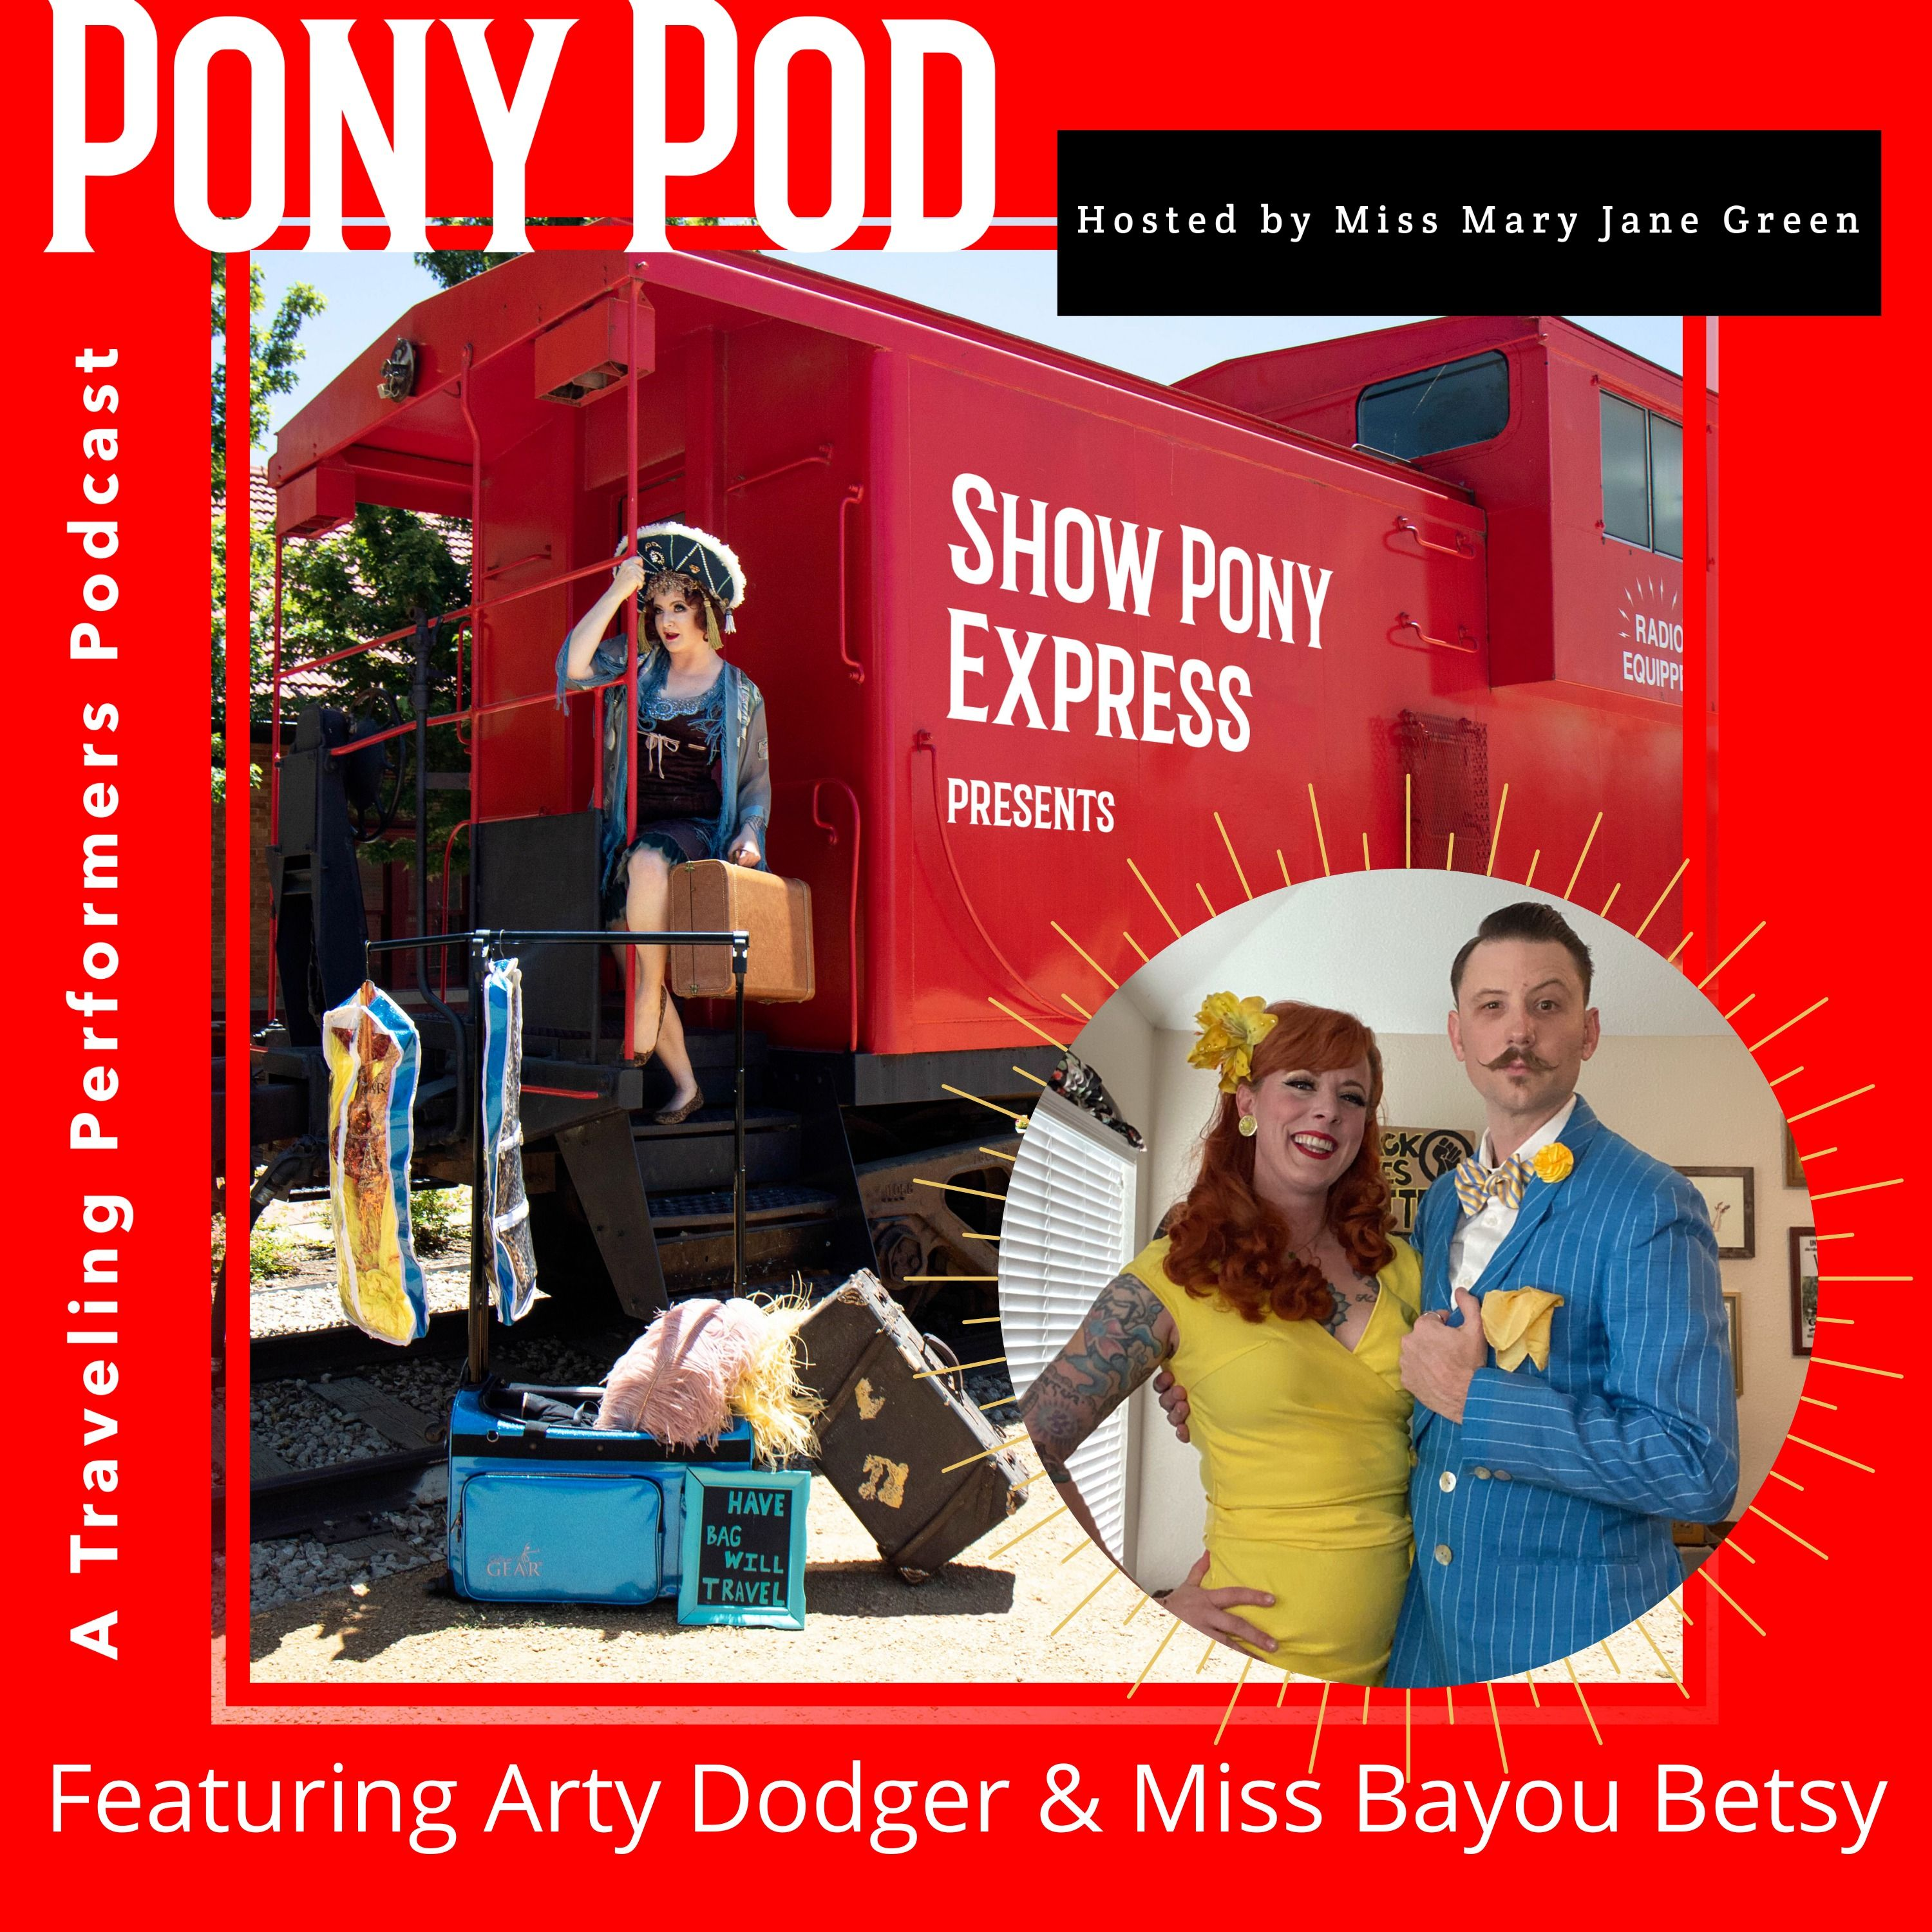 Pony Pod - A Traveling Performers Podcast featuring Arty Dodger & Miss Bayou Betsy